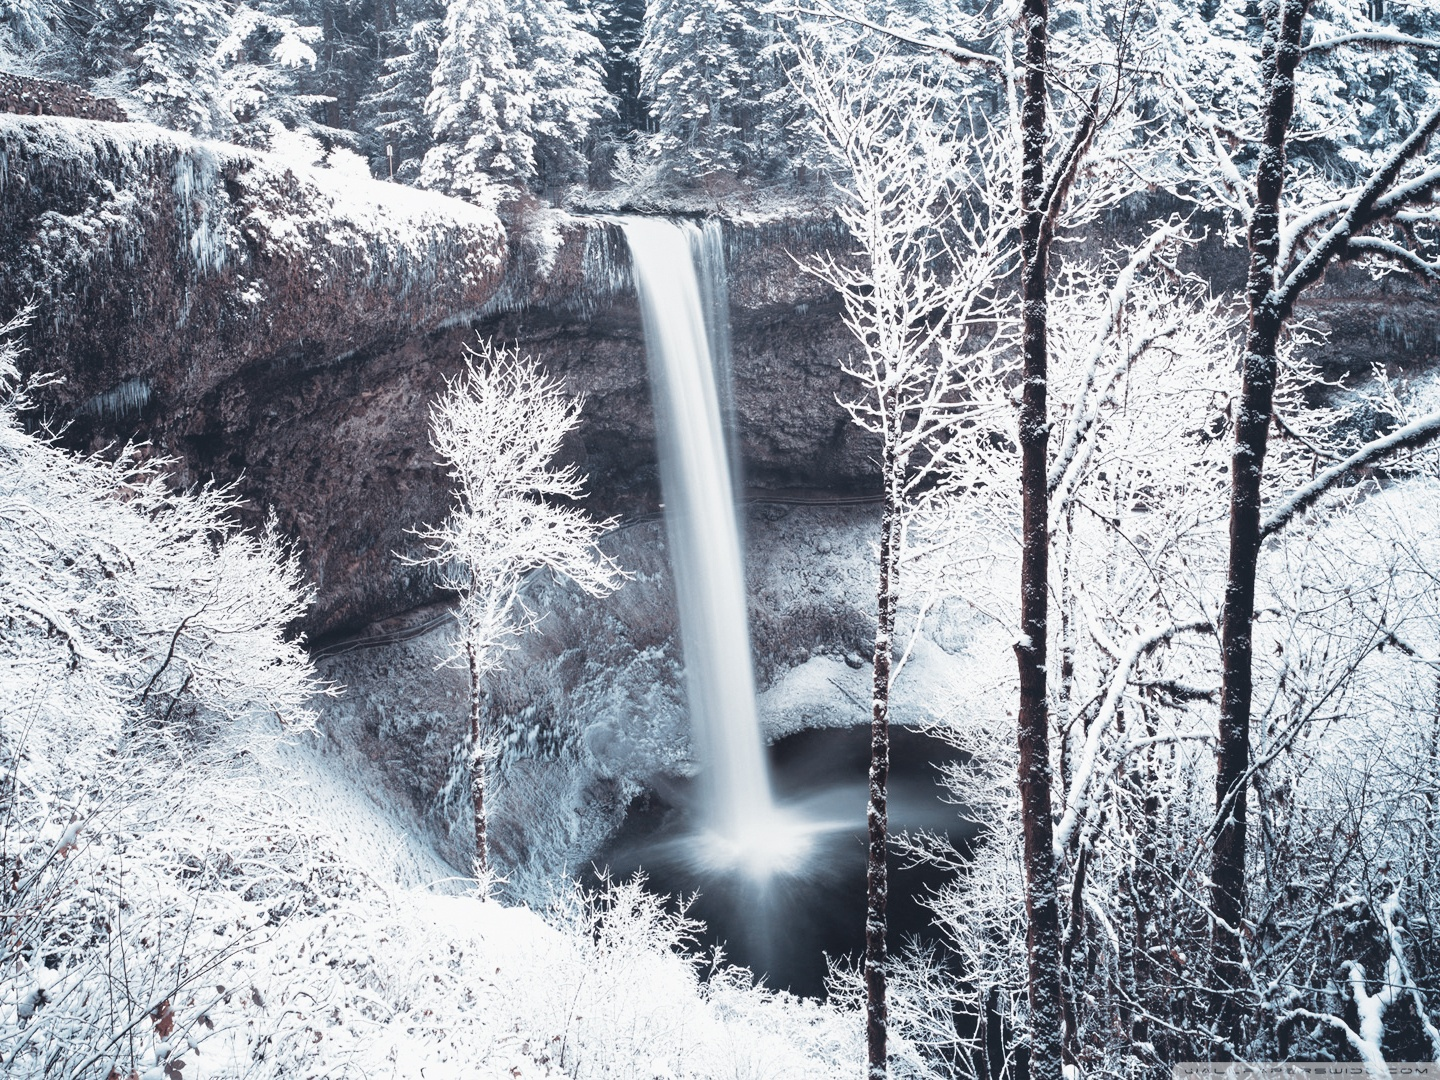 Waterfall in winter forest wallpapers and images   wallpapers 1440x1080